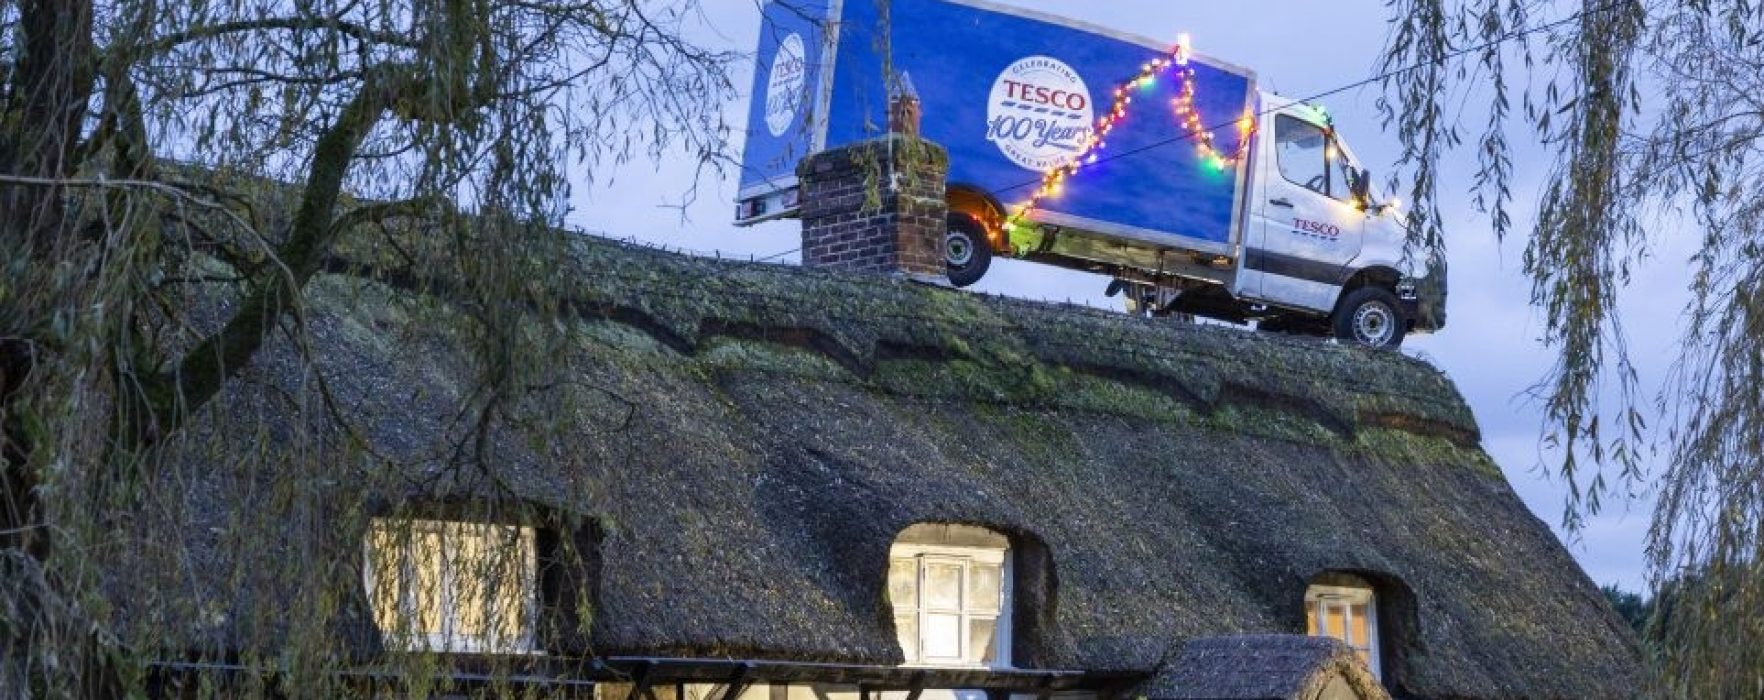 CHESHIRE: Tesco delivery van appears on roof of house in Knutsford